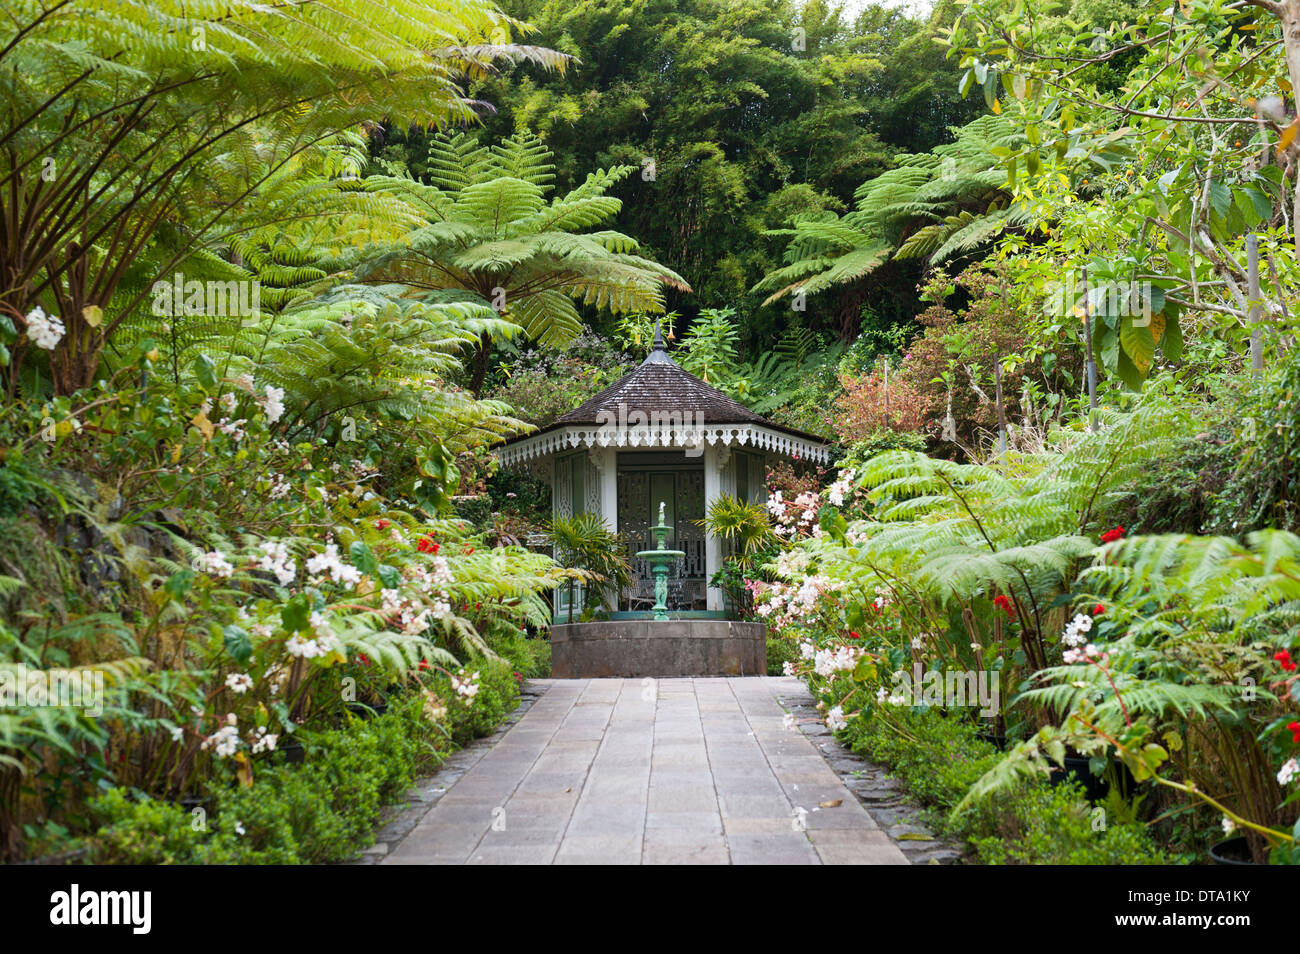 Creole architecture, garden with a fountain, gazebo, Maison Folio, tropical vegetation with Tree Ferns (Cyatheales) - Stock Image